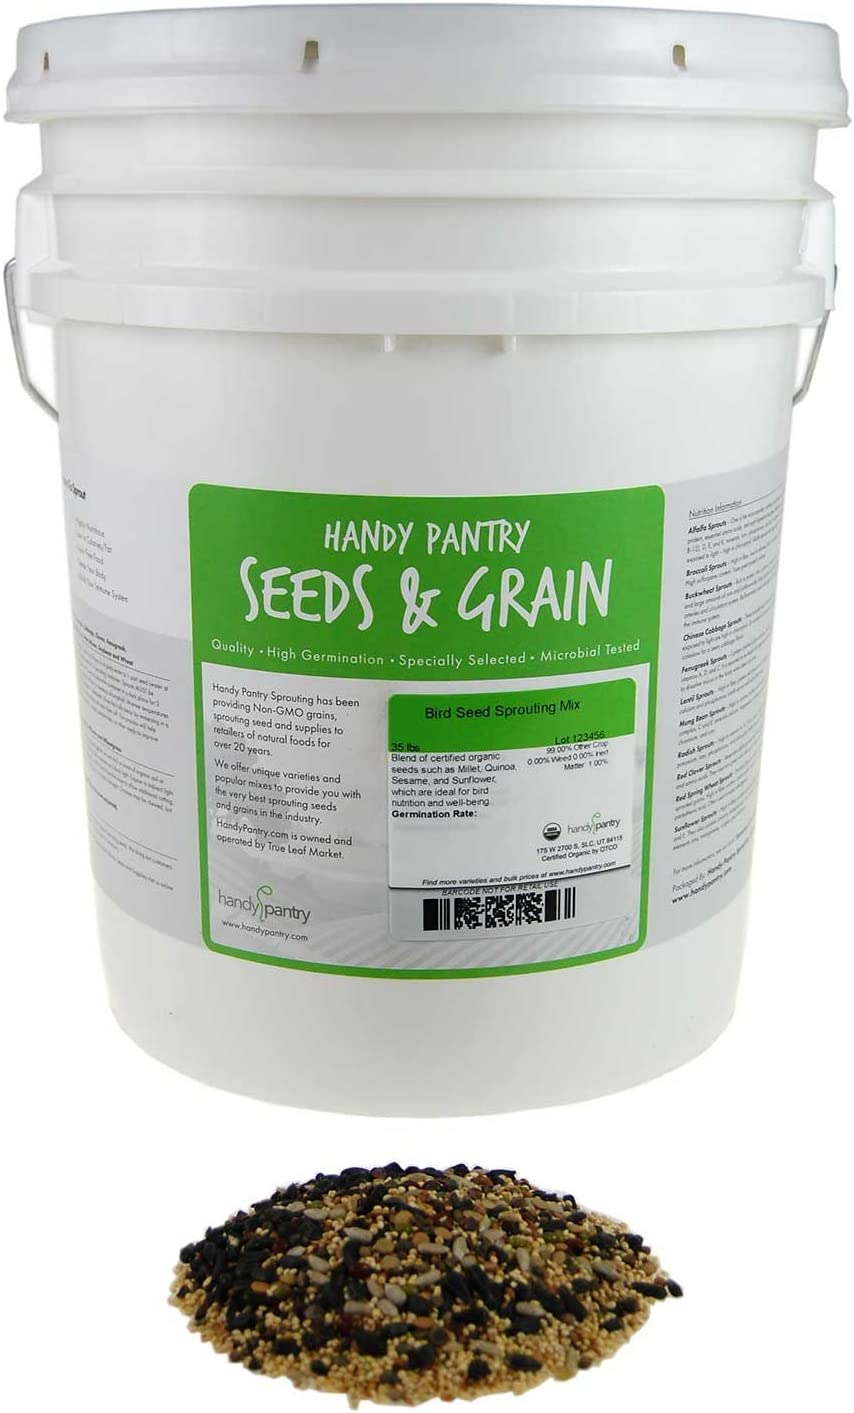 Handy Pantry Organic Birdseed - 35 Lb - Sprouting Bird Seed Mix for Small, Medium & Large Birds- Feed for Songbirds, Parakeets, Parrots, etc